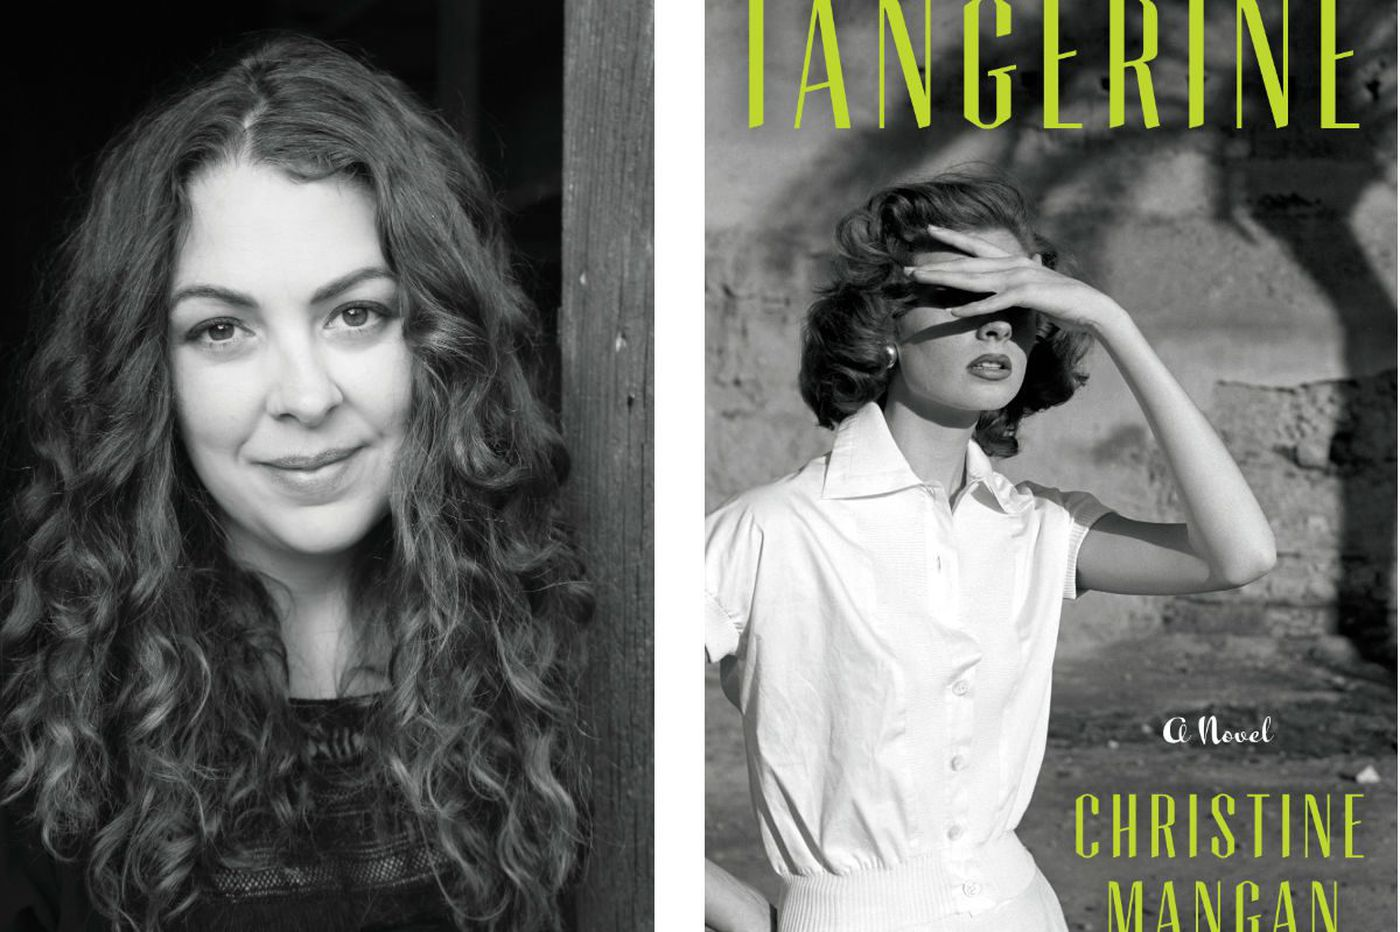 Catherine Mangan's 'Tangerine': A debut thriller that will make a terrific movie